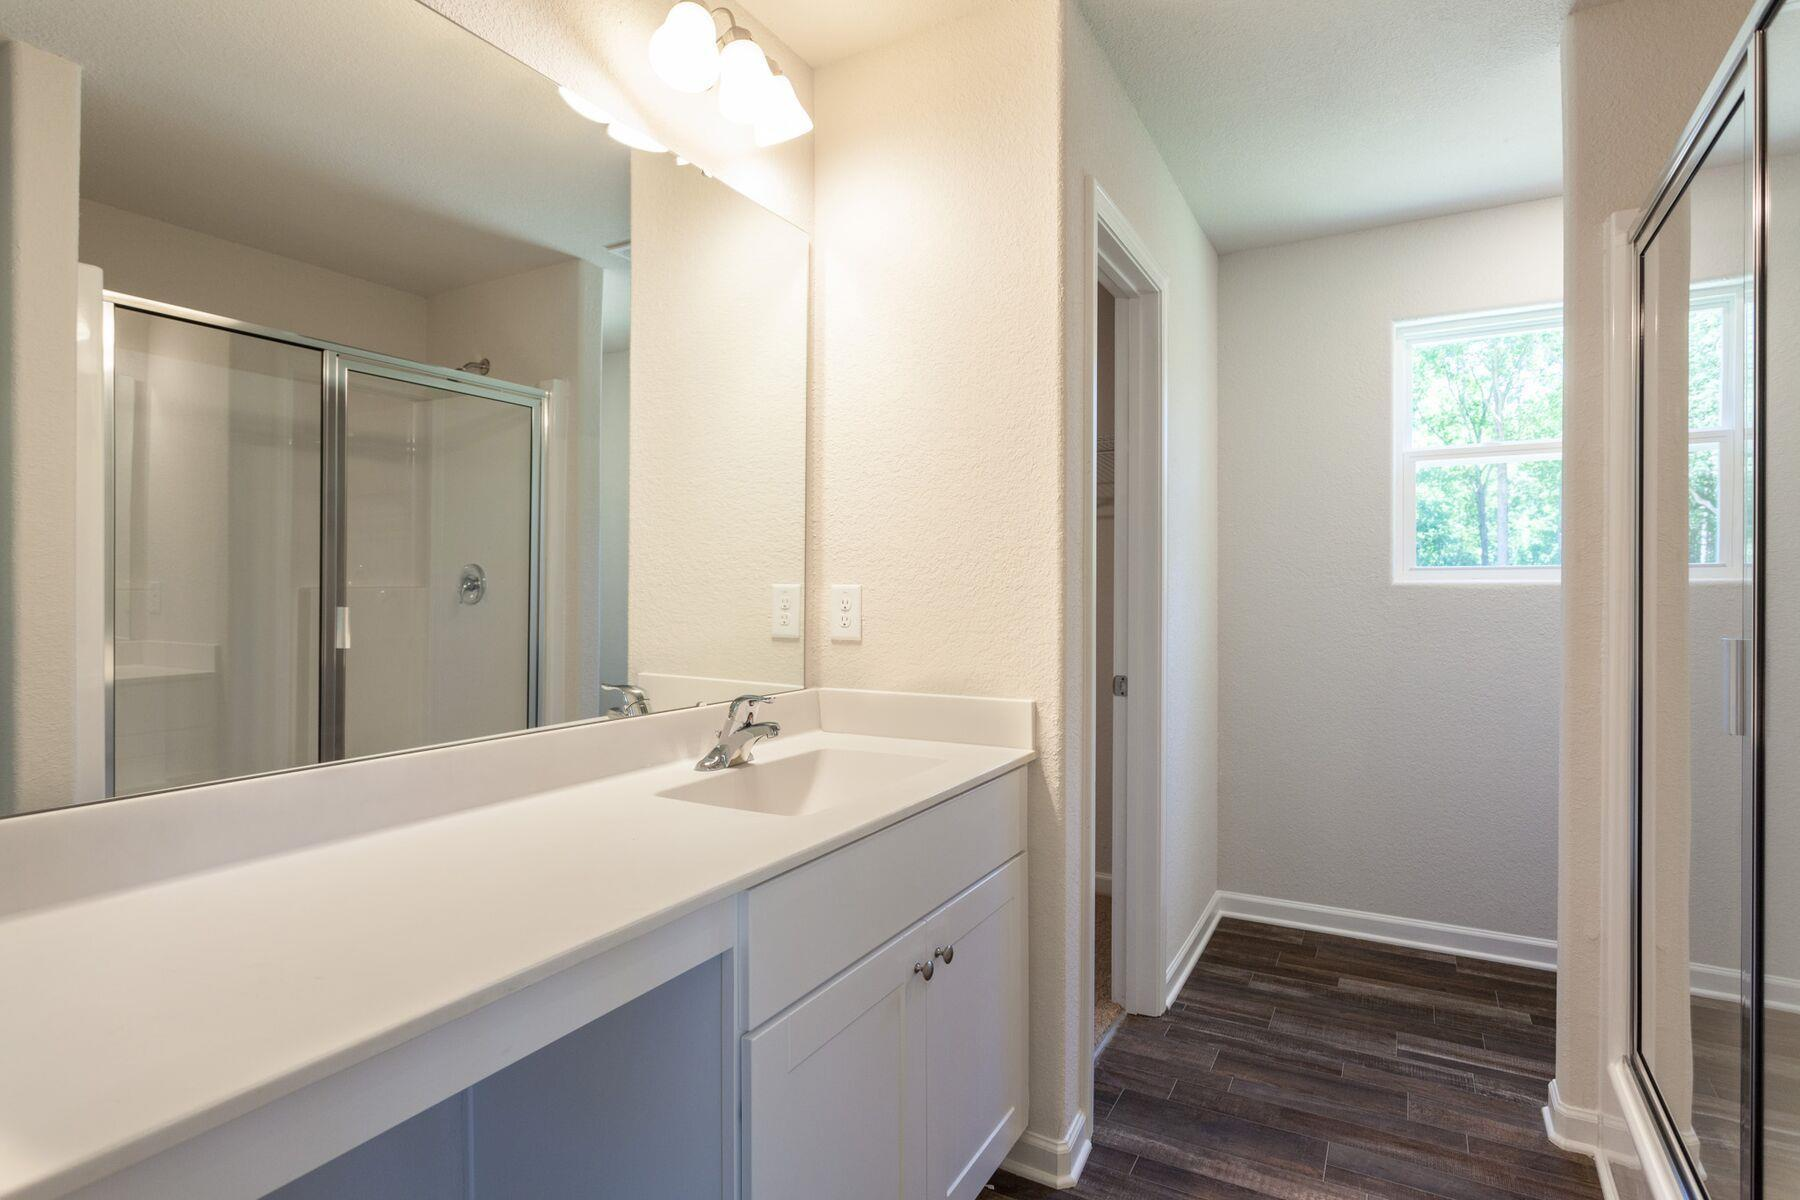 Bathroom featured in the Fripp By LGI Homes in Columbia, SC